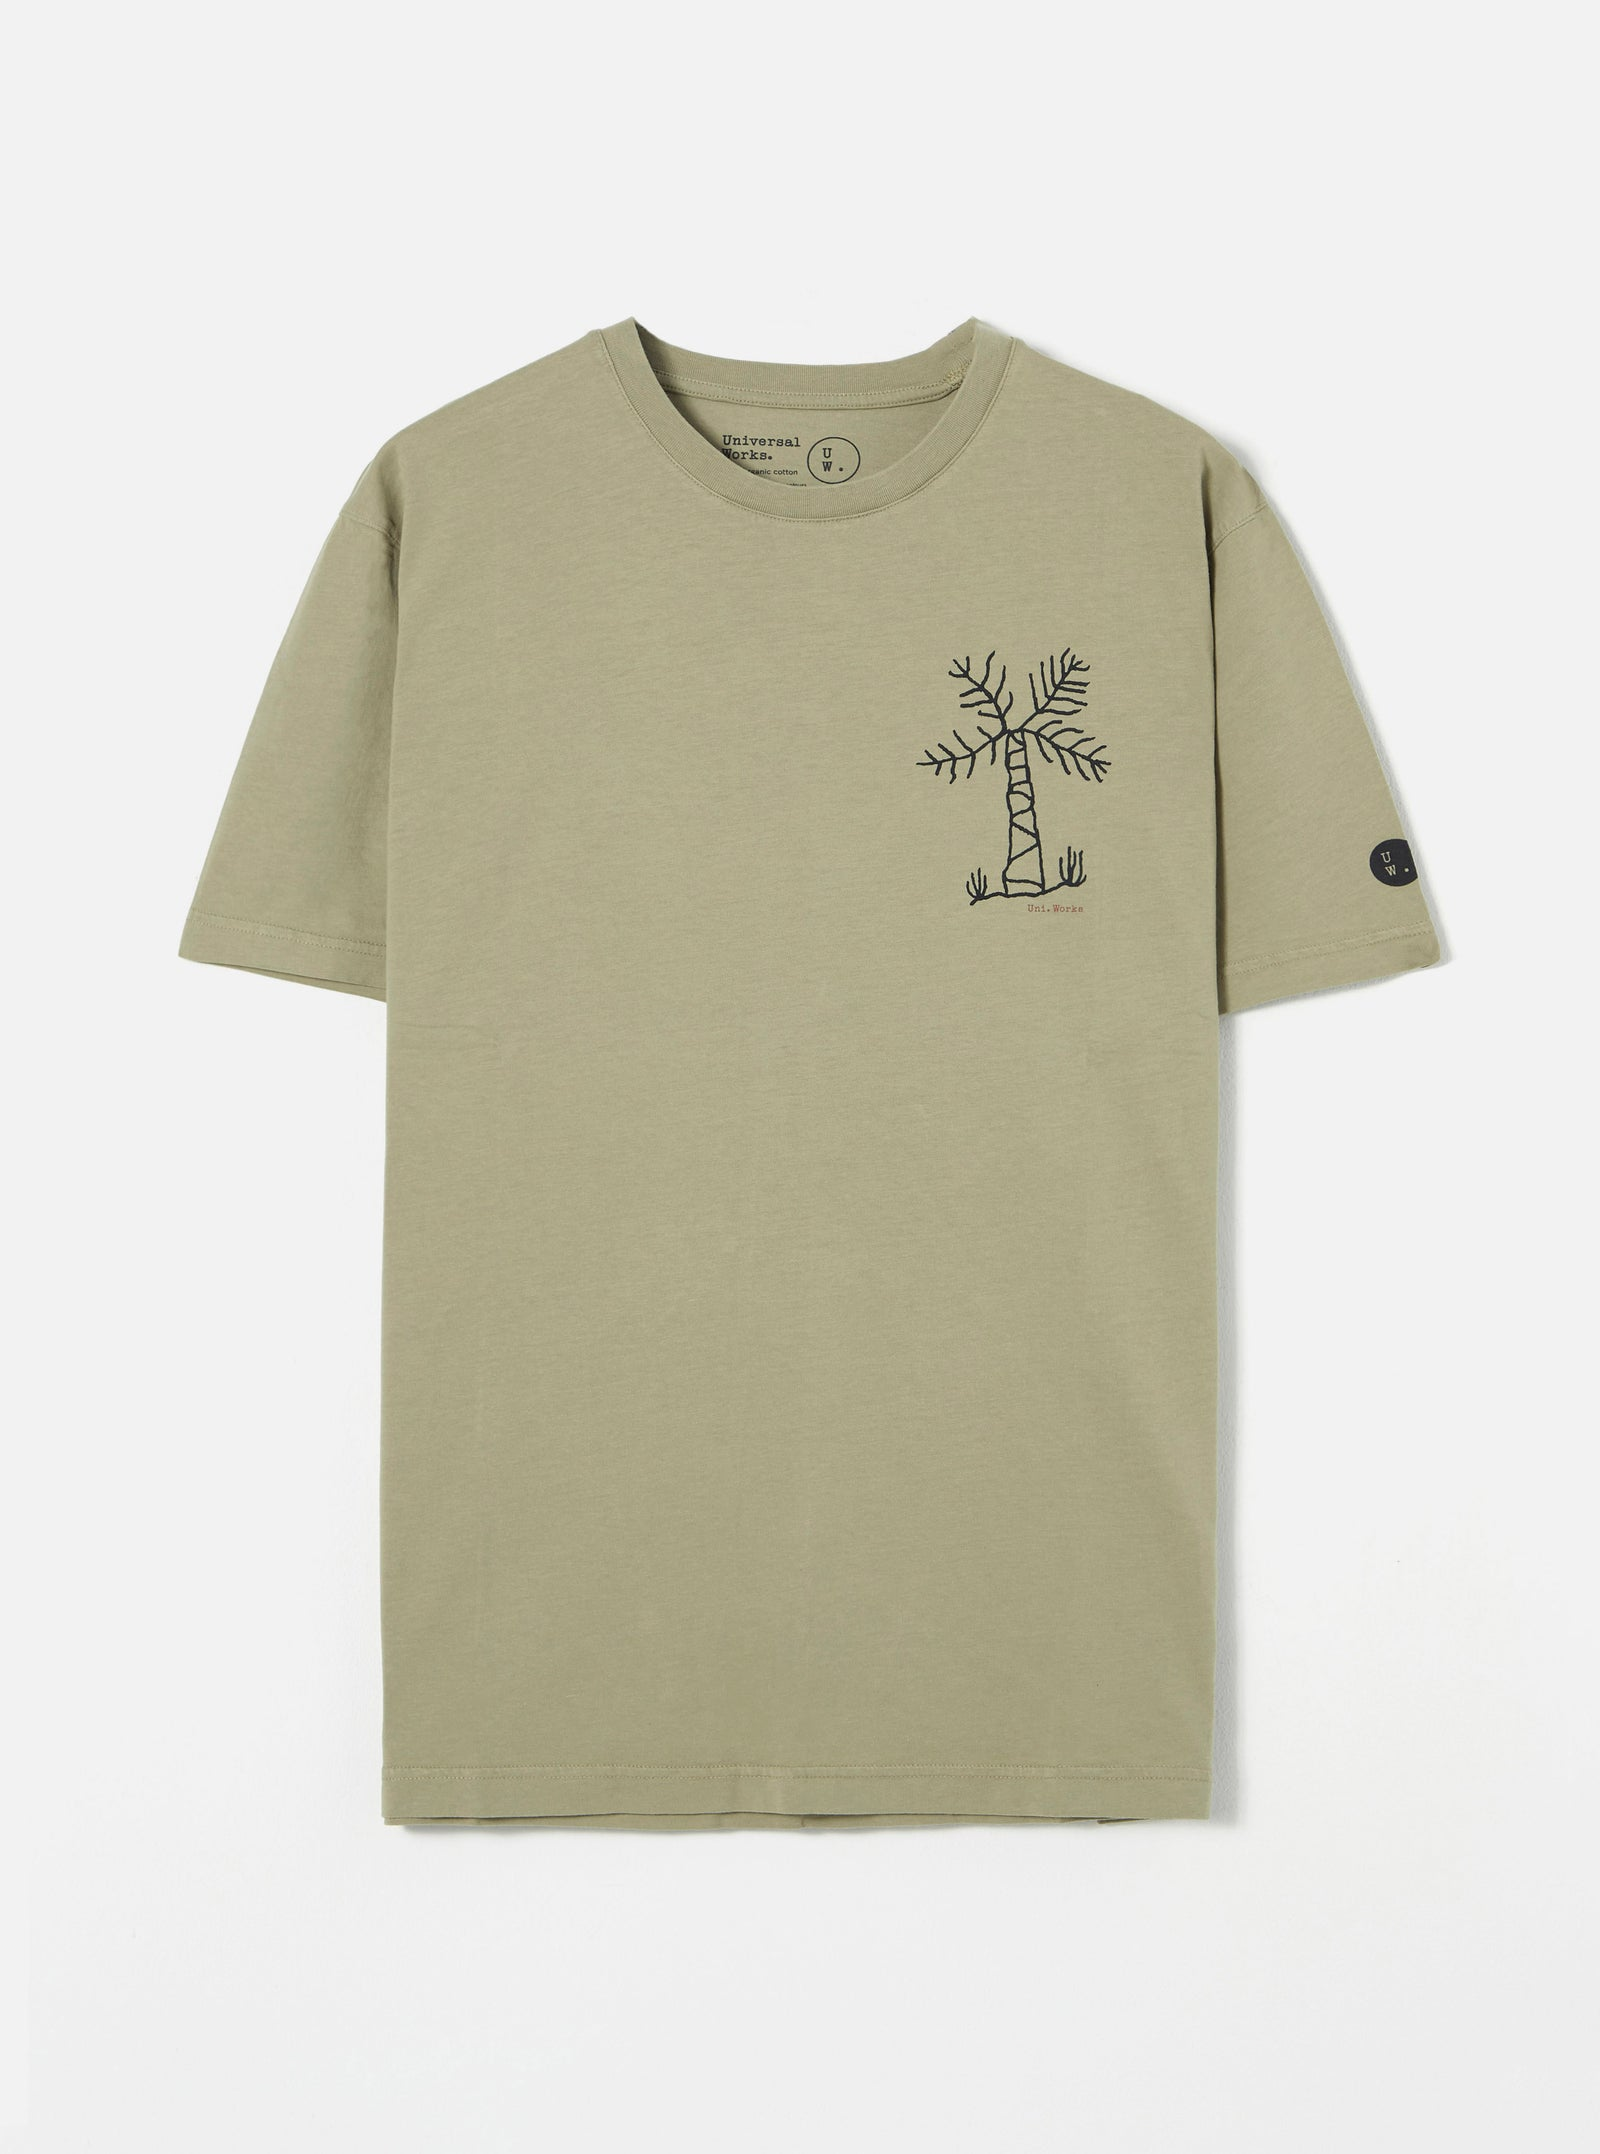 Universal Works Organic Standard Tee in Laurel Palm Print Jersey